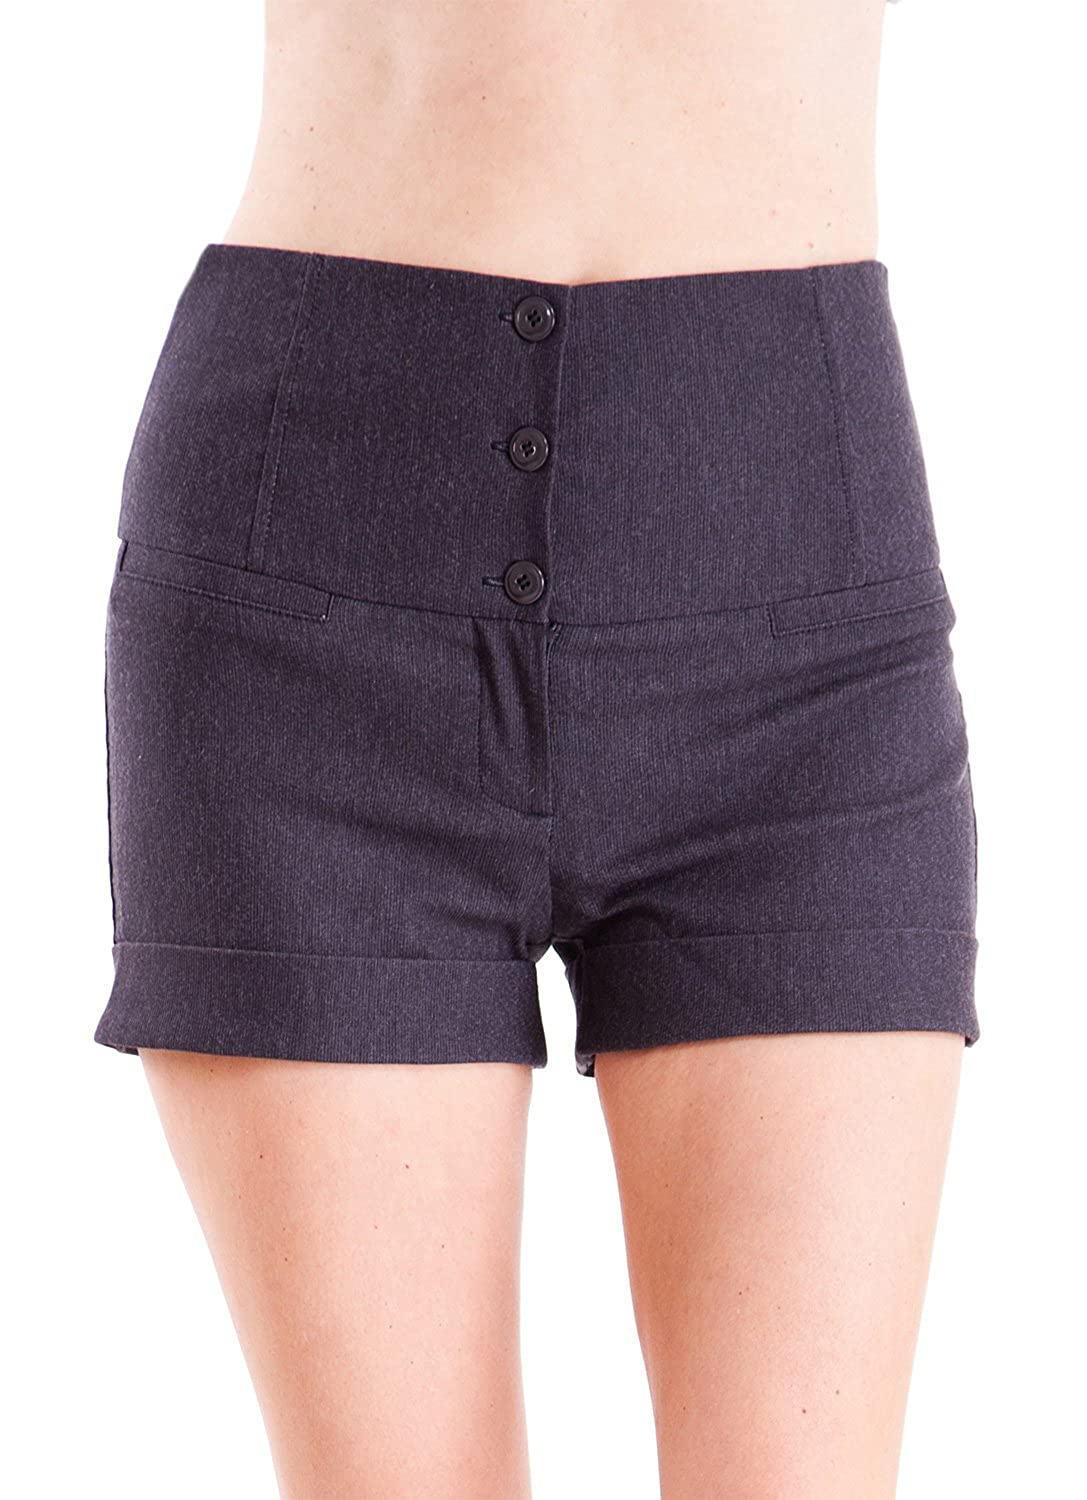 Clothes Effect Ladies High Waist 3 Button Fly 4 Pocket Shorts, Multiple Colors Avail